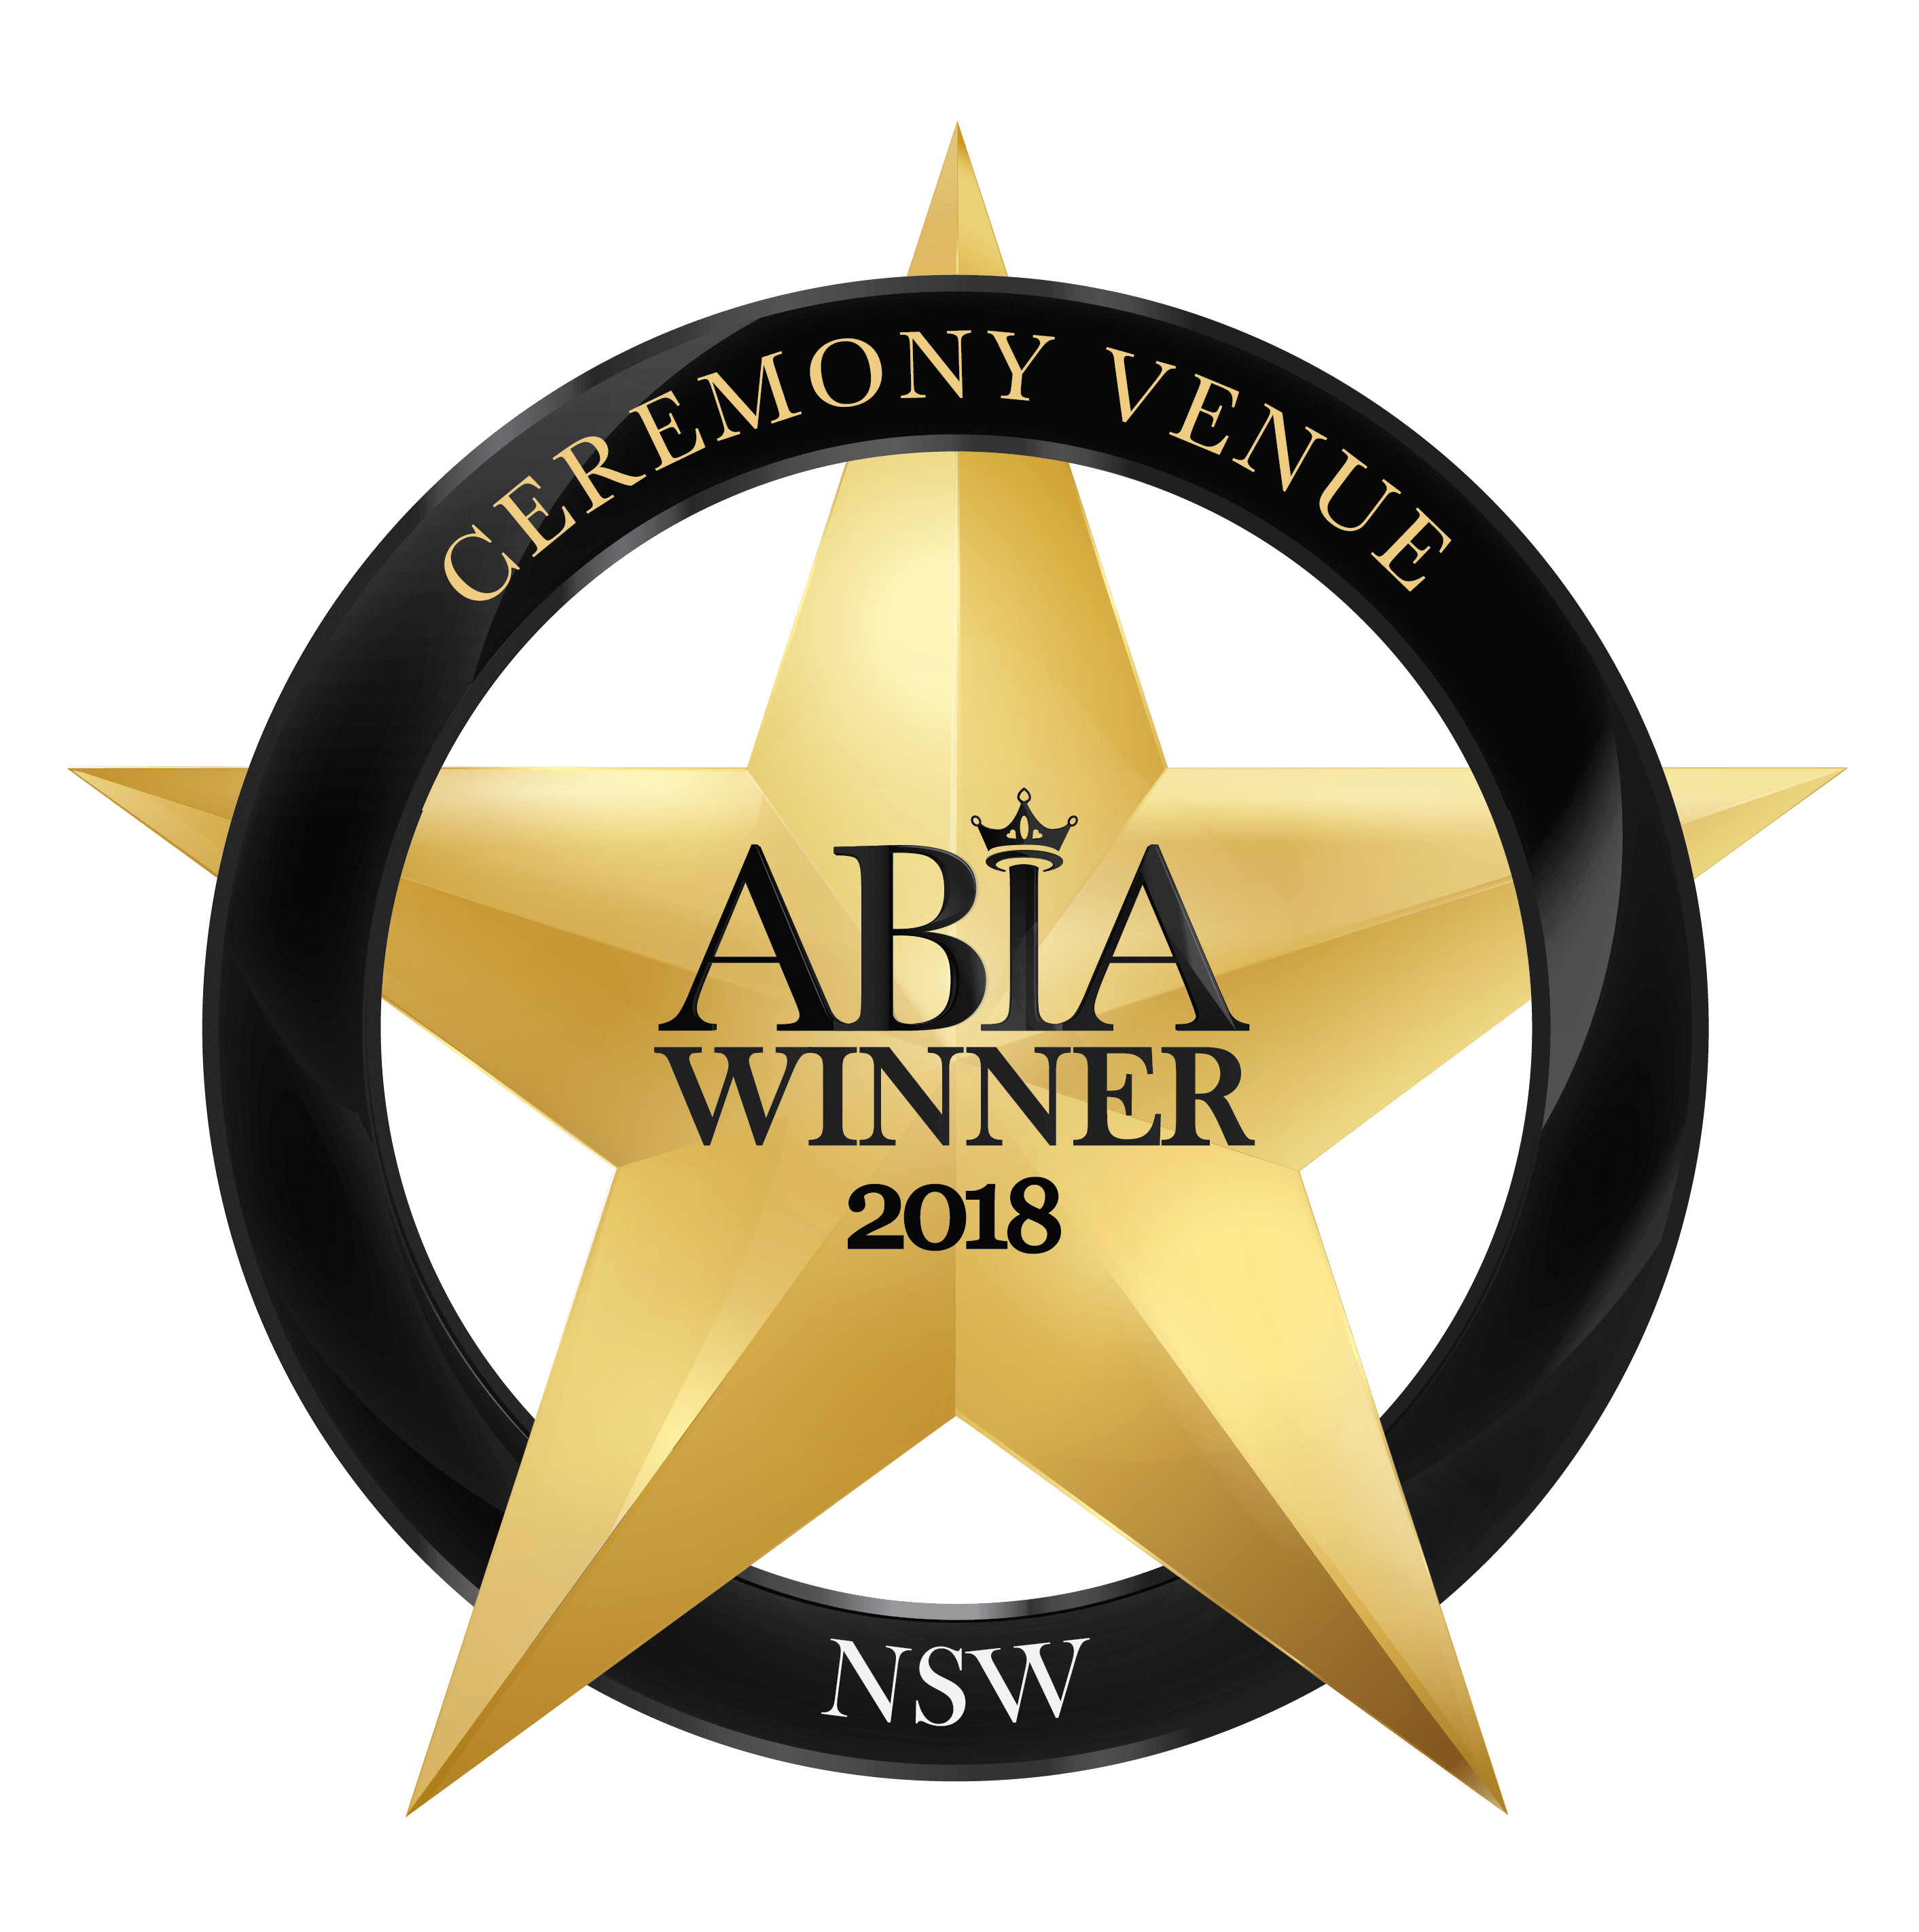 _2018-ABIA-Award-Logo-Ceremony-Venue_WINNER